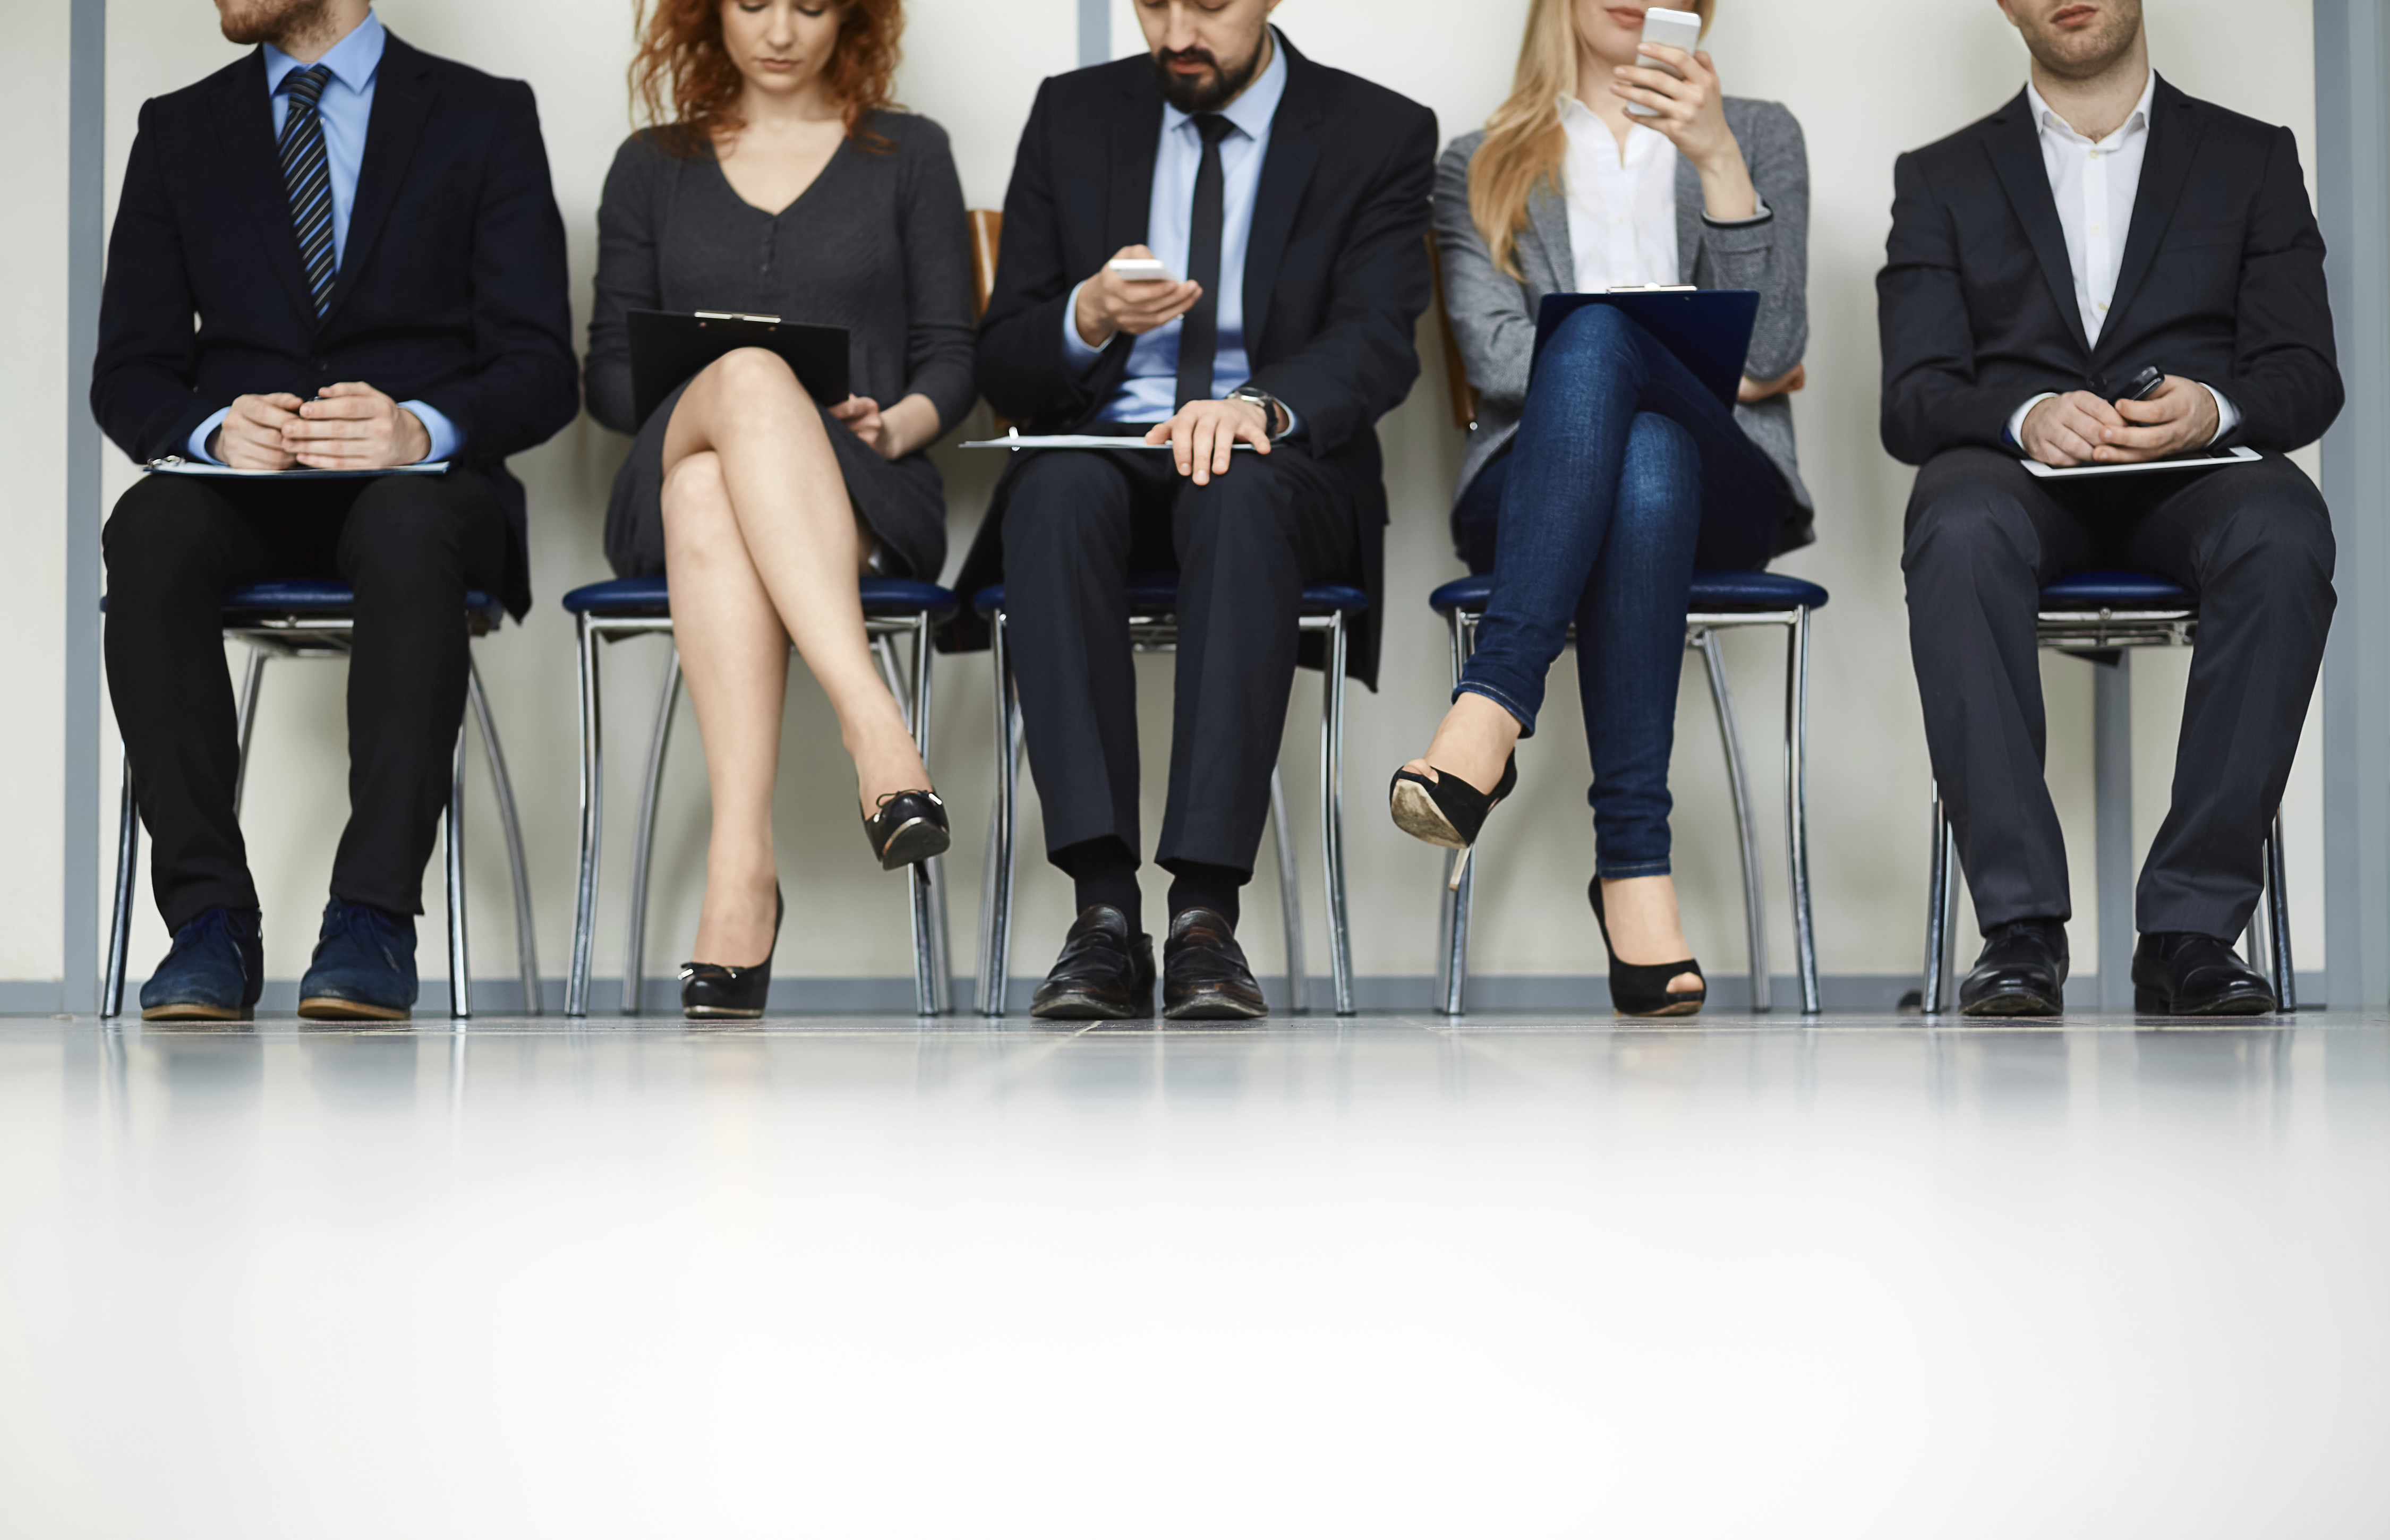 job interview tips psychology today